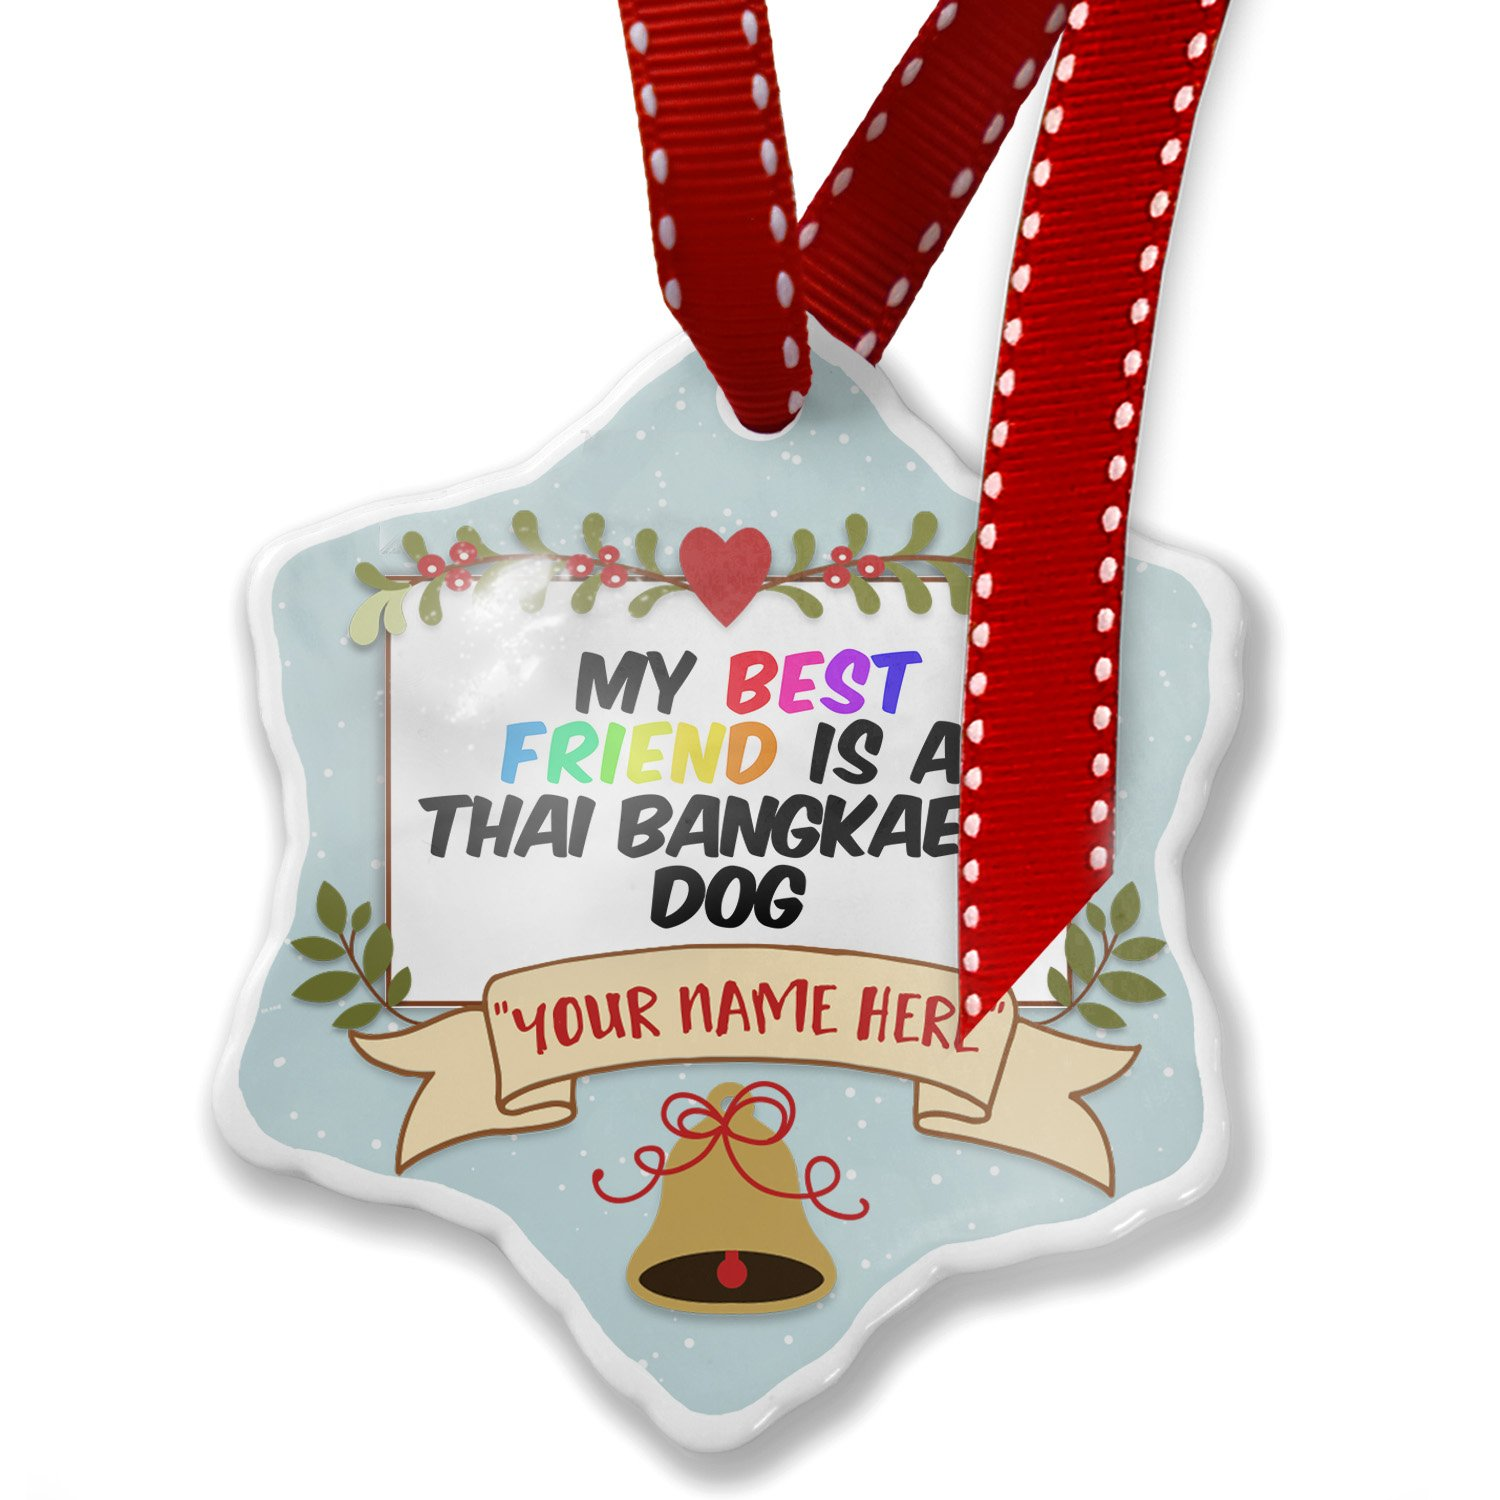 Add Your Own Custom Name, My best Friend a Thai Bangkaew Dog from Thailand Christmas Ornament NEONBLOND by NEONBLOND